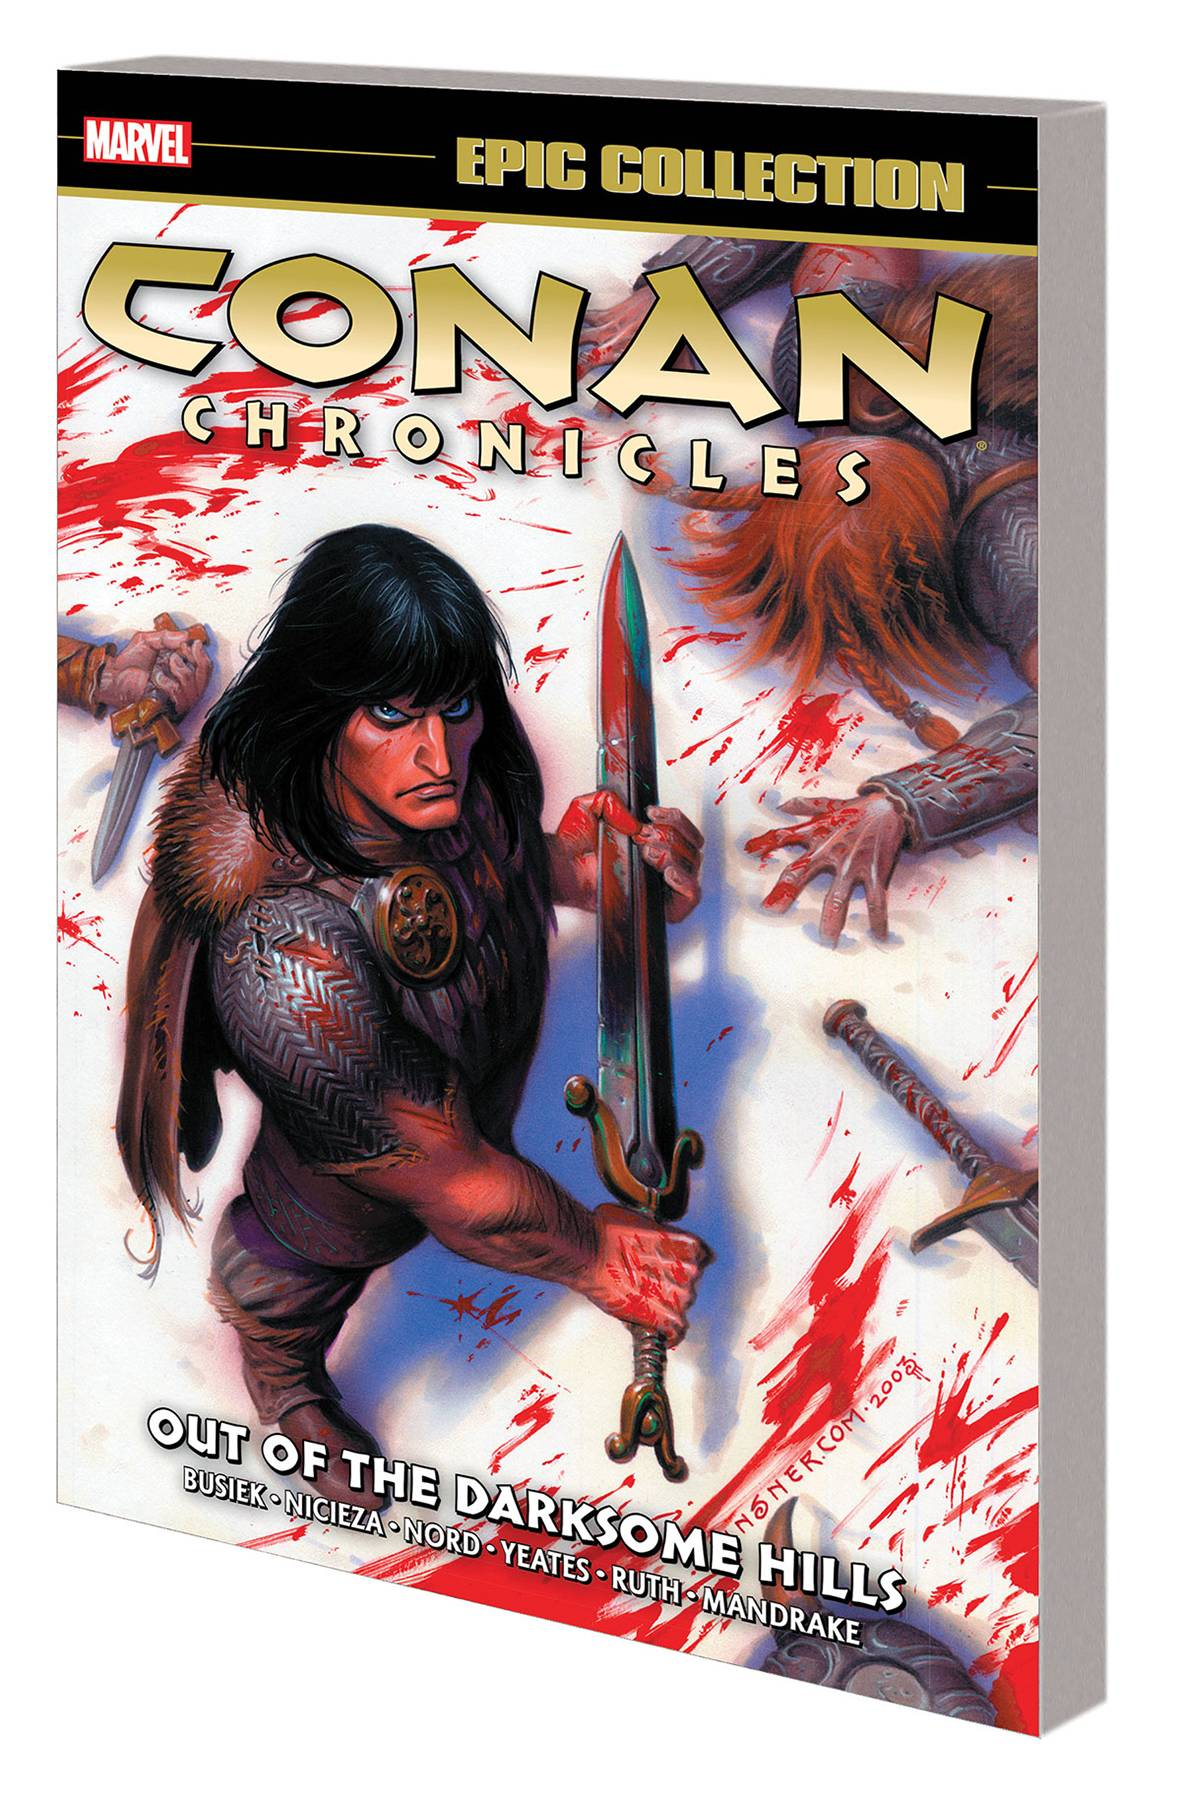 CONAN CHRONICLES EPIC COLLECTION TP DARKSOME HILLS